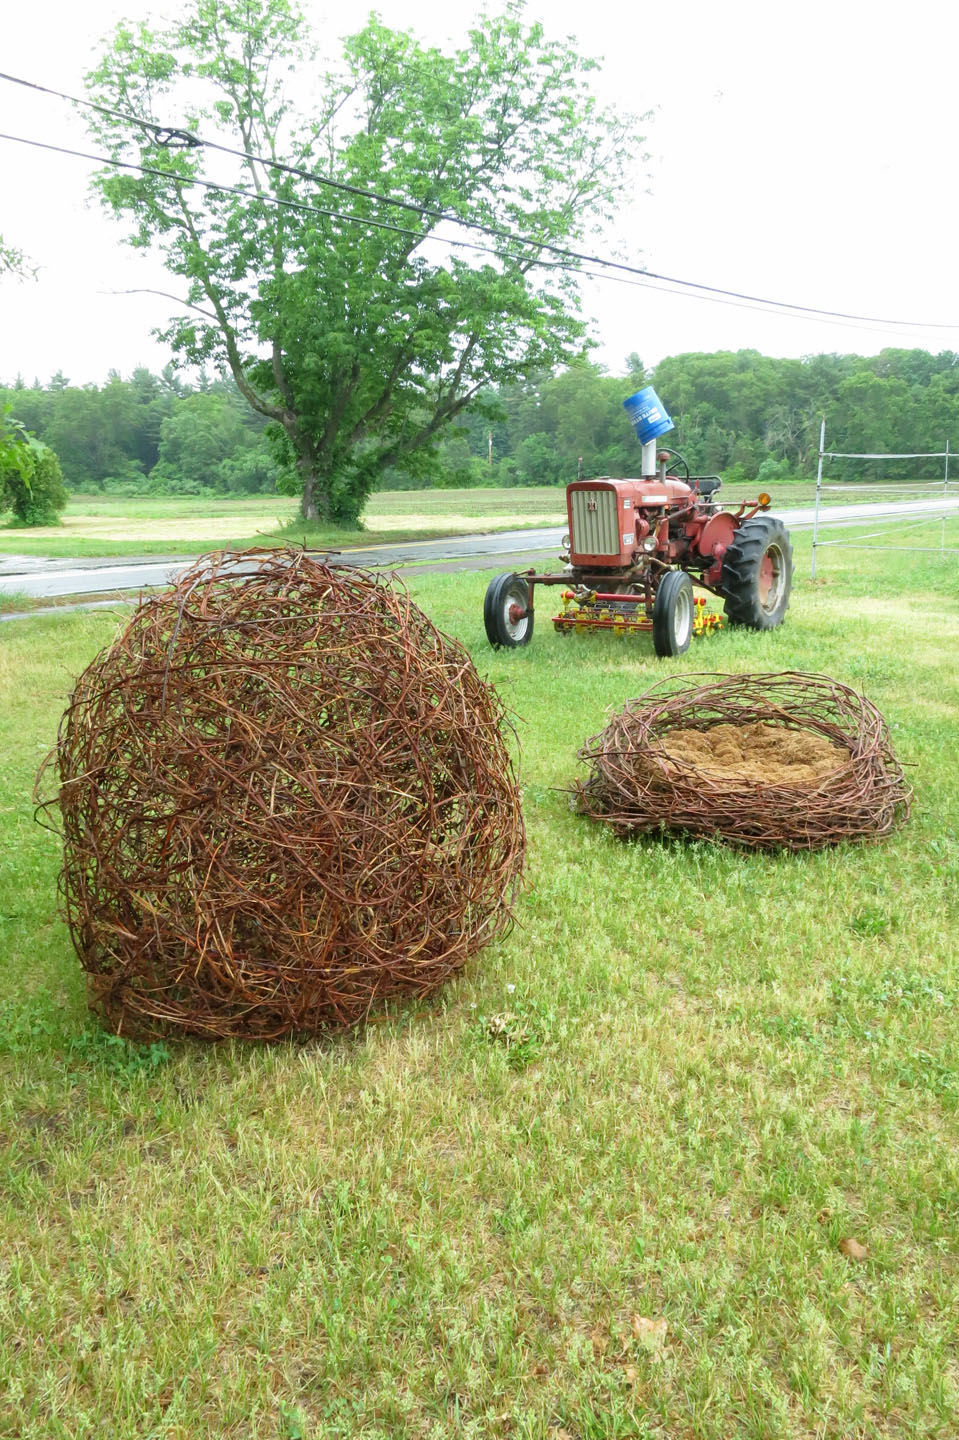 Farm Picnic_Vine Egg and Nest.jpg